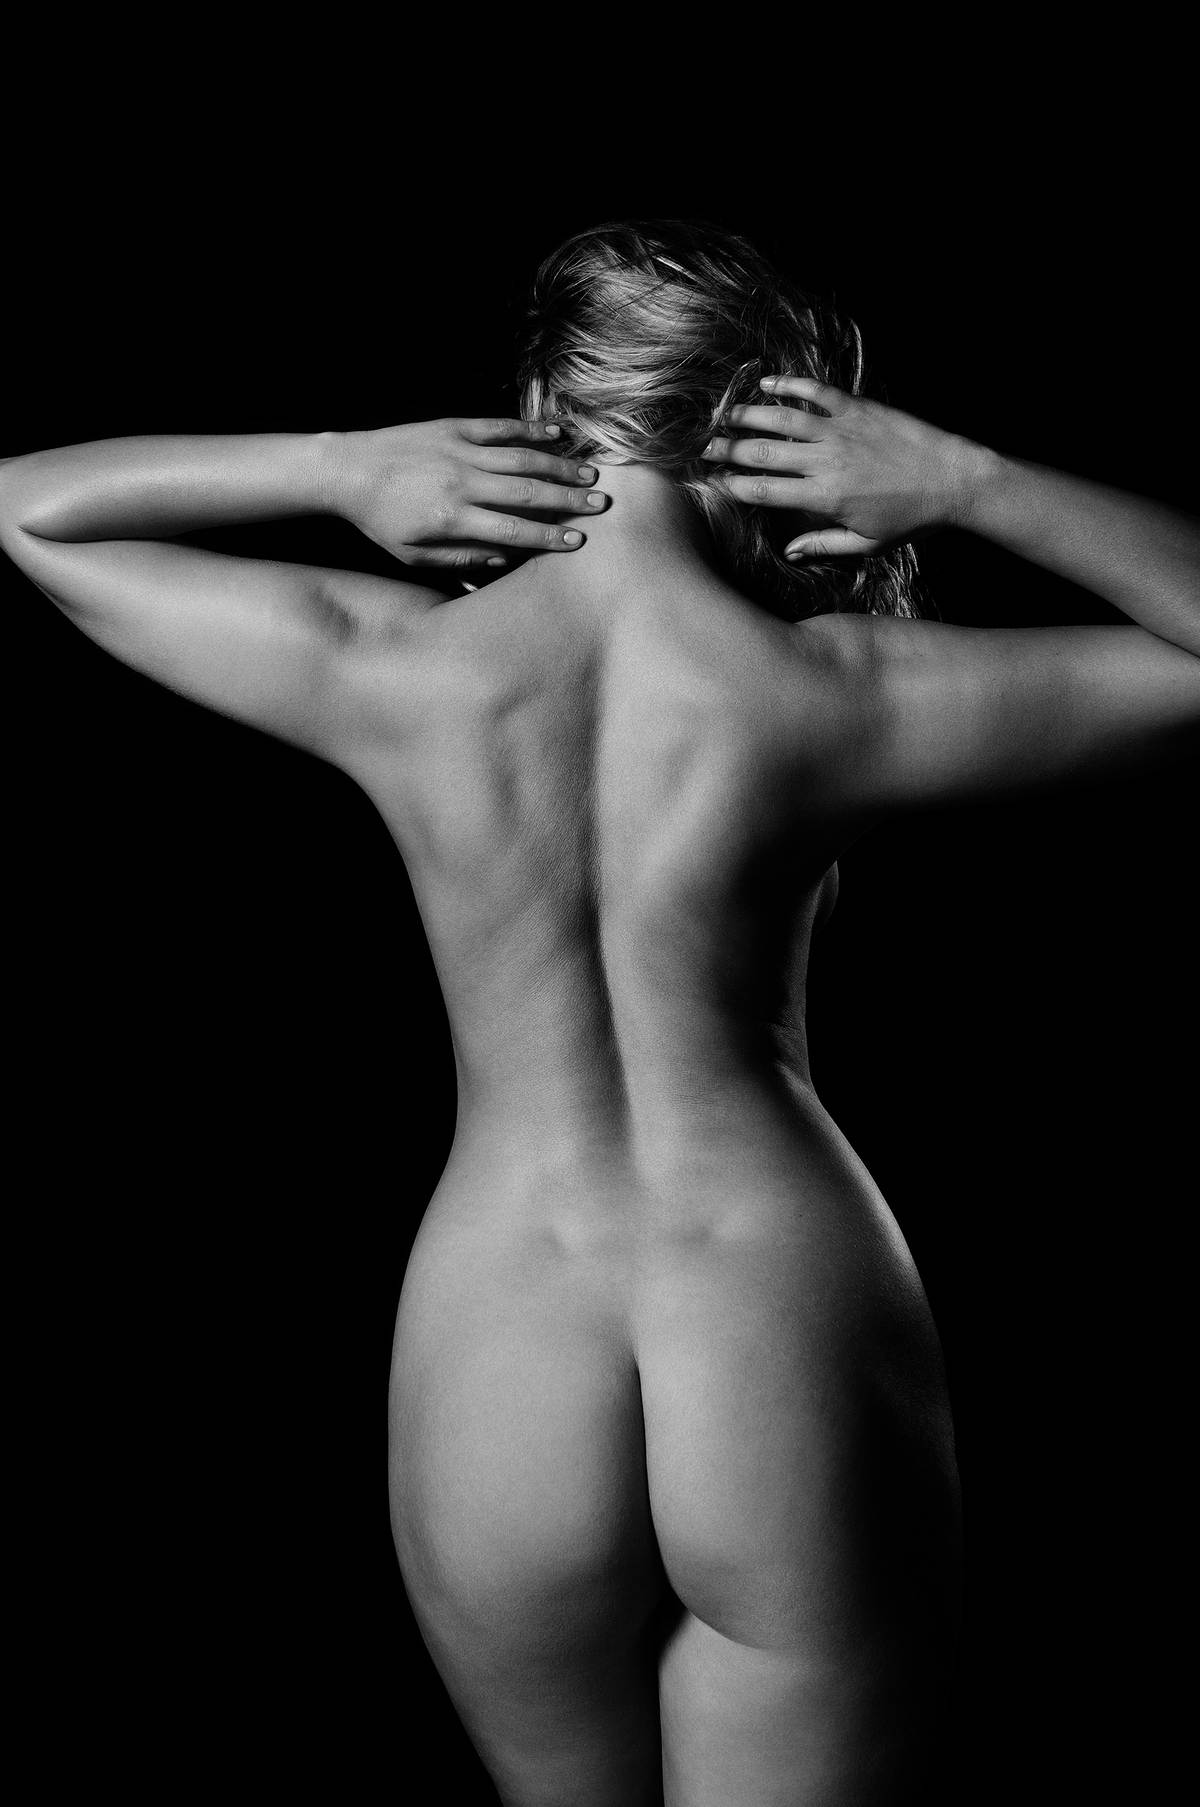 NUDE FROM THE BACK